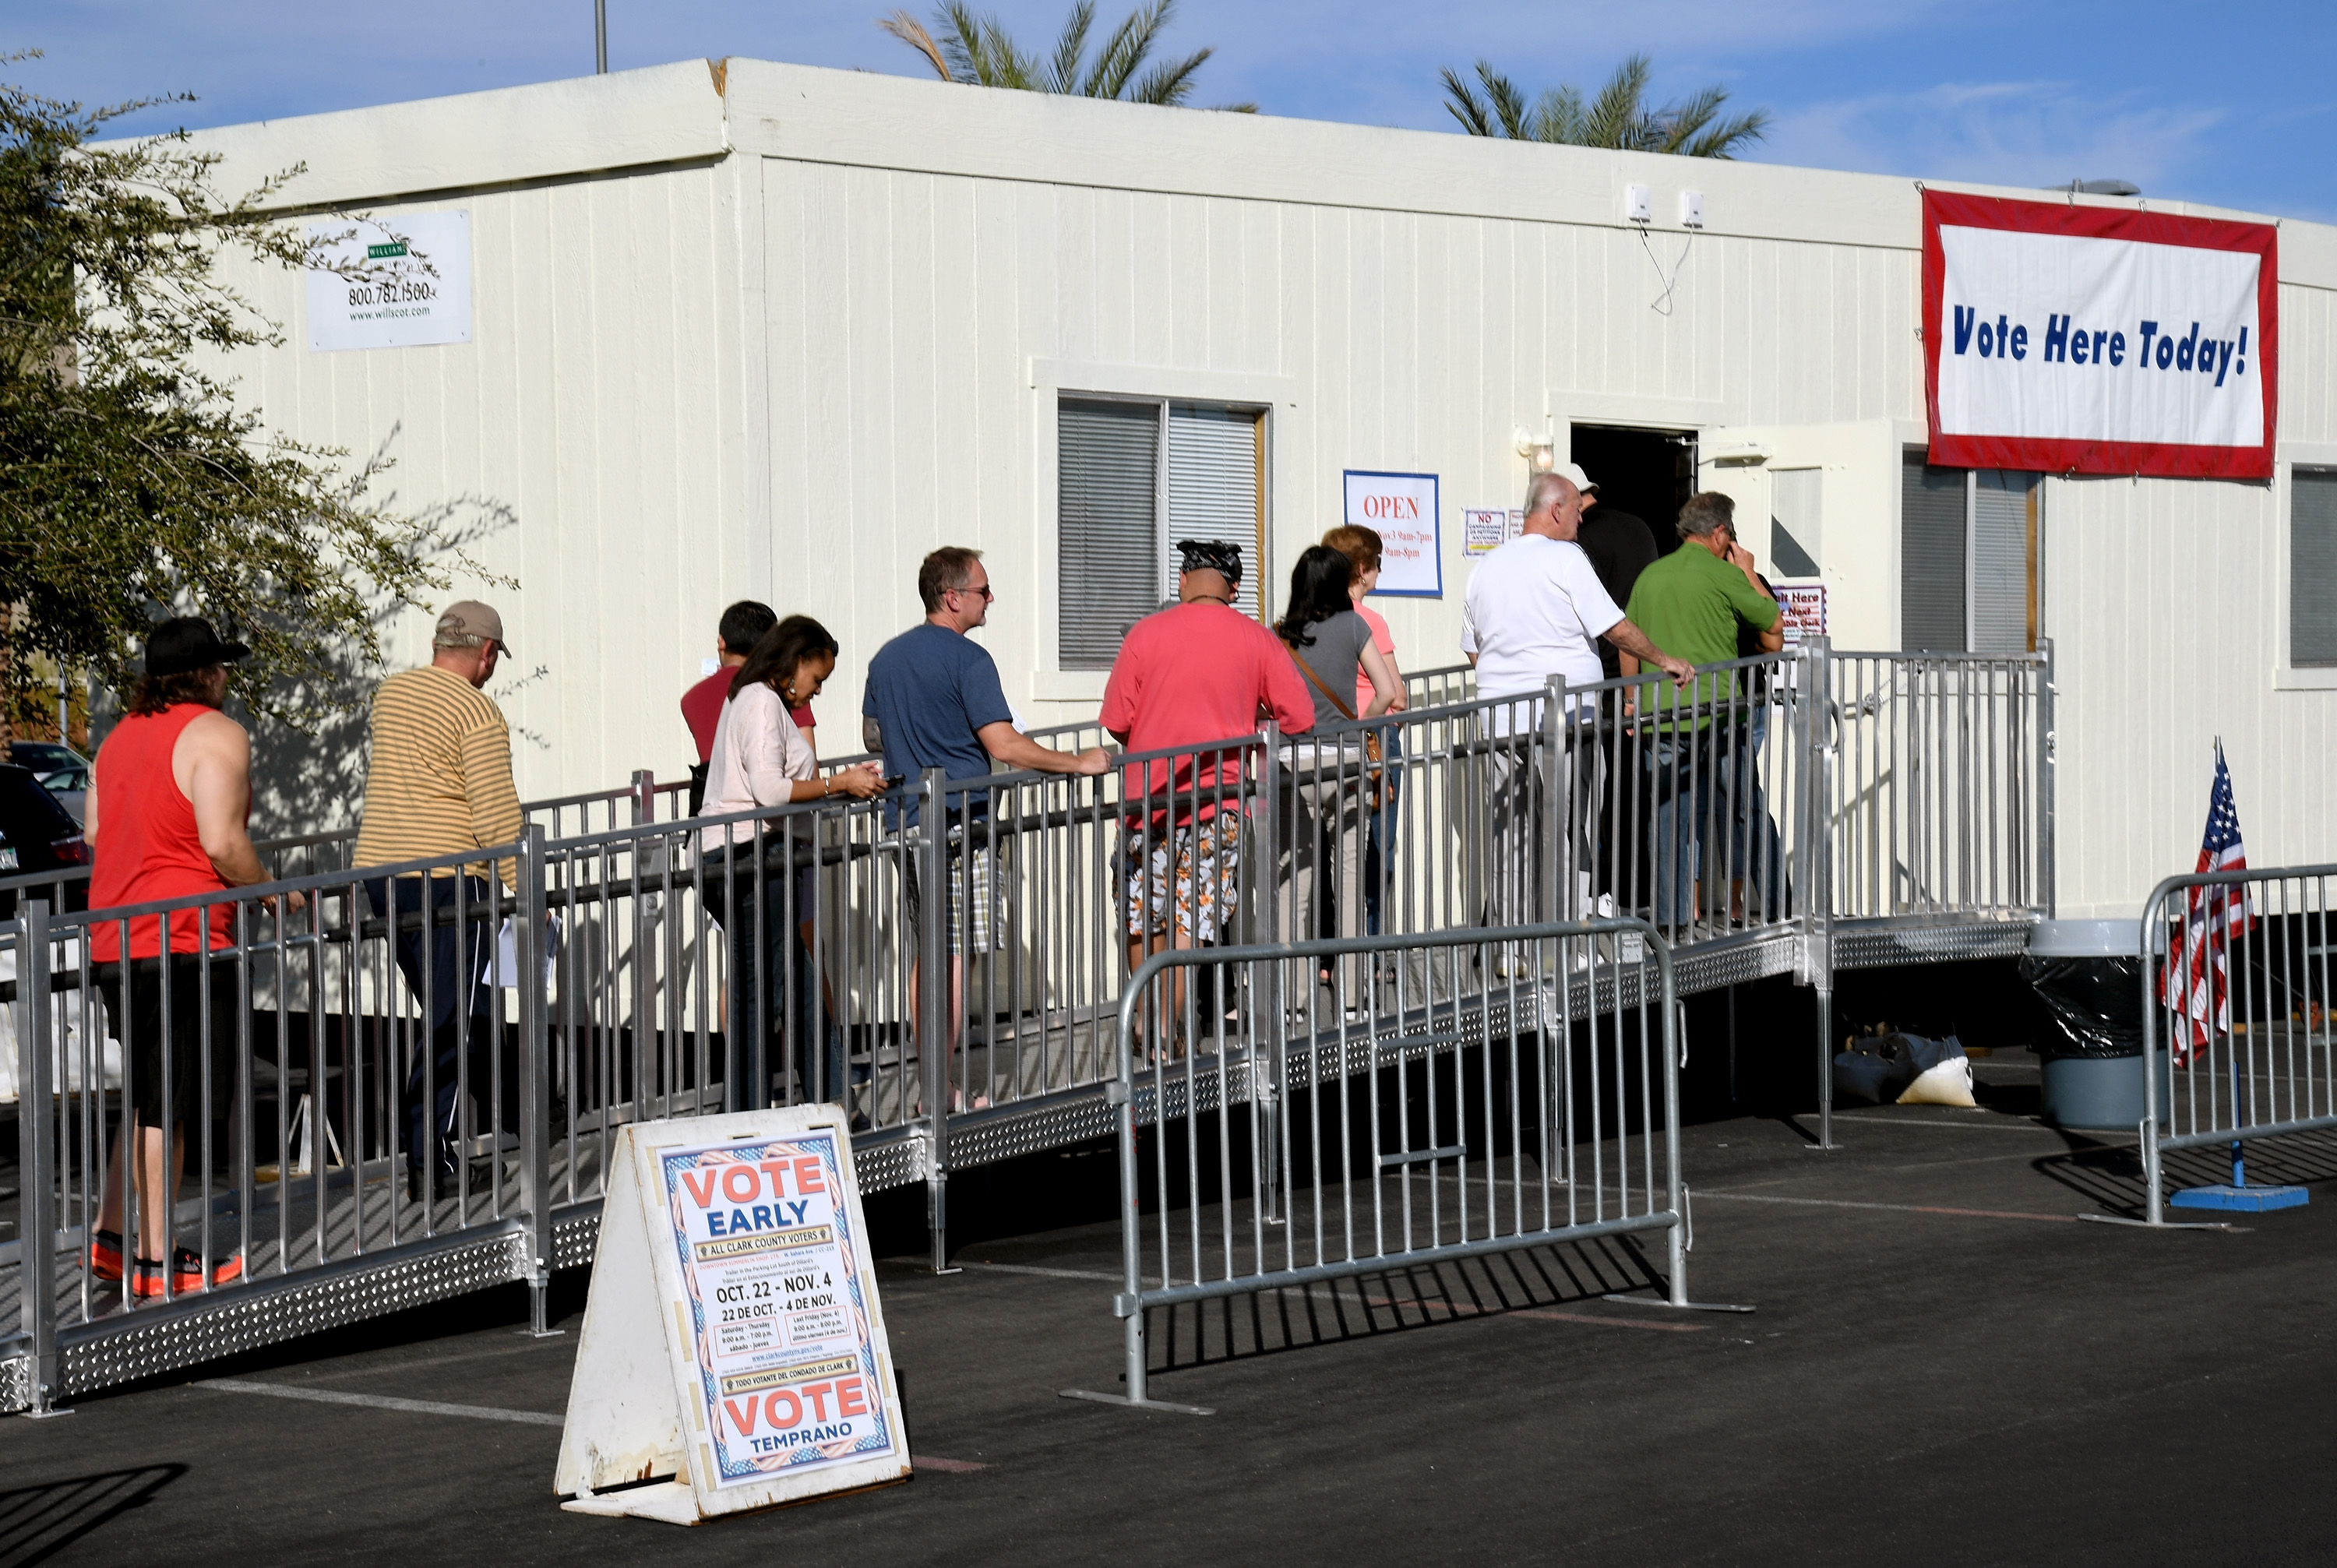 Donald Trump tried to sue a Nevada county that let polls stay open so people could vote